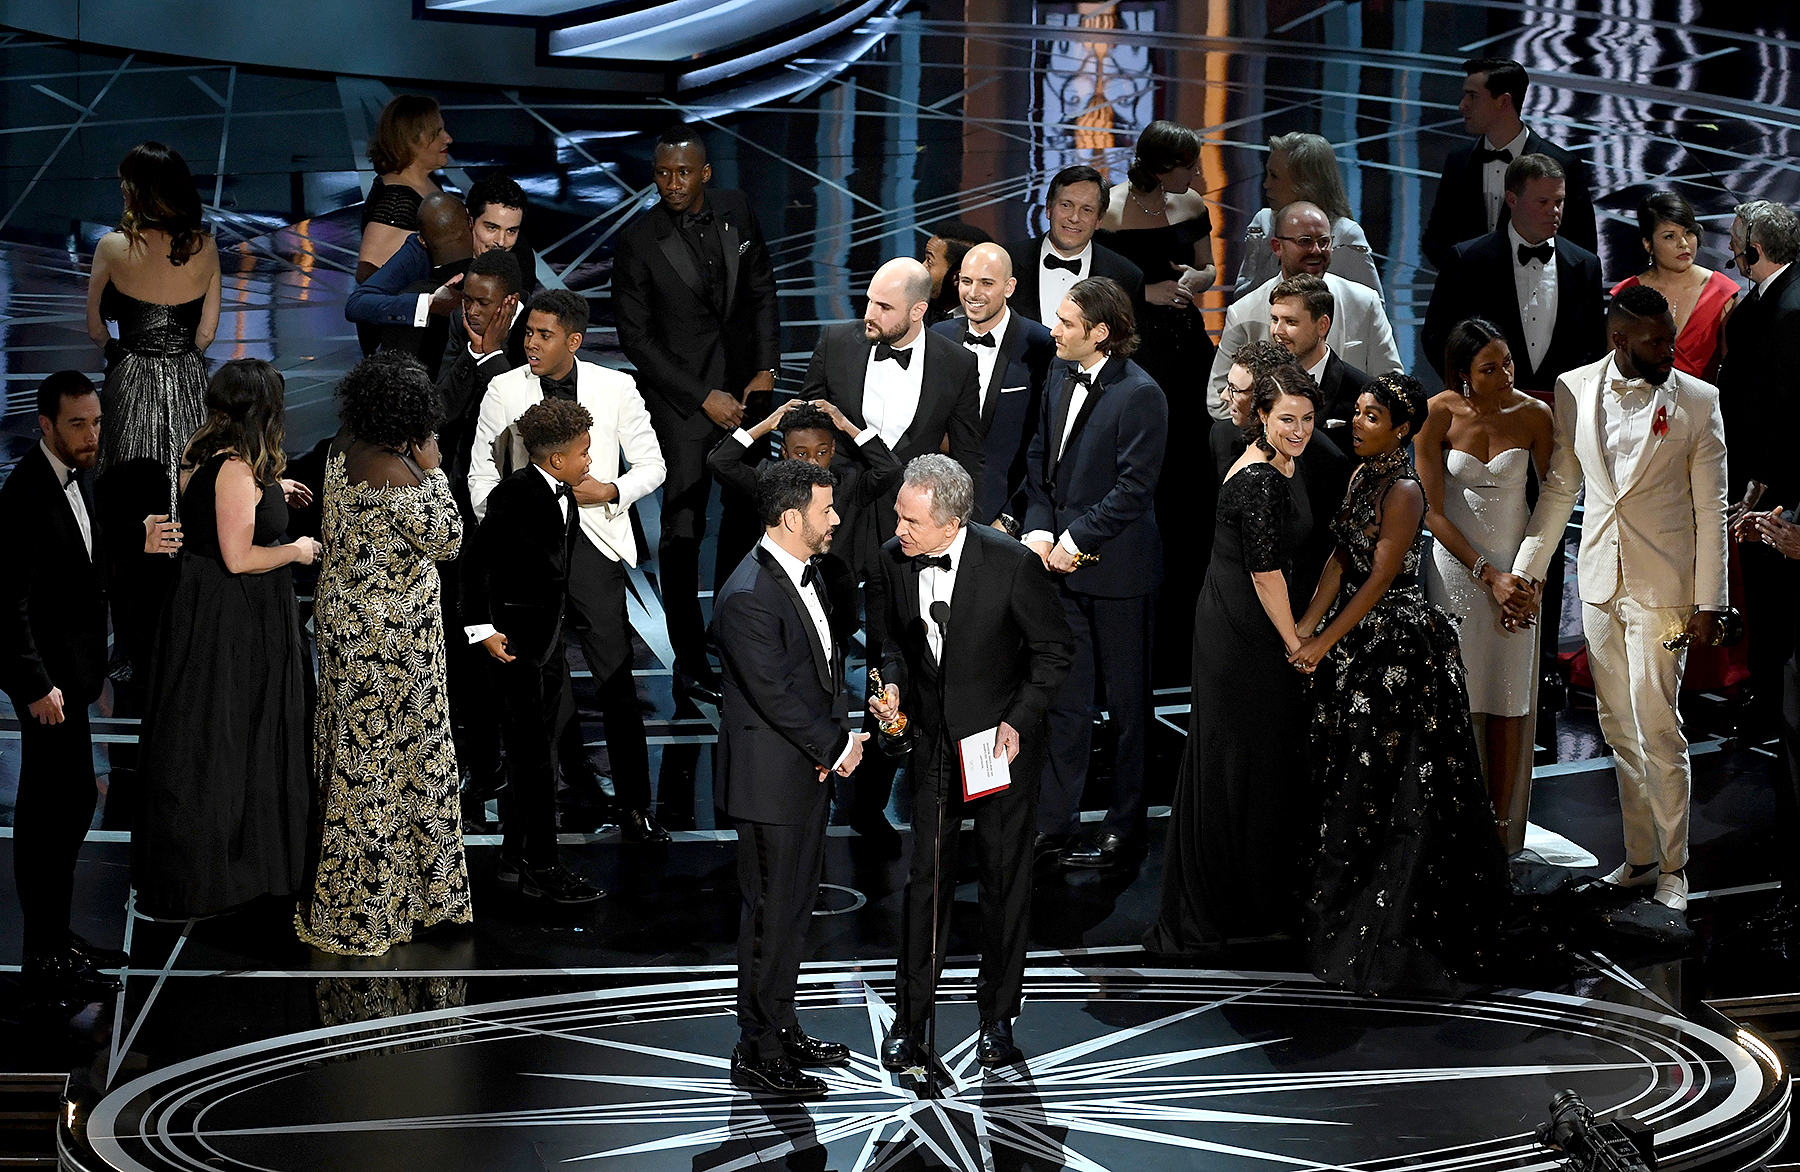 Actor Warren Beatty (R) explains a presentation error which resulted in Best Picture being announced as 'La La Land' instead of 'Moonlight' with host Jimmy Kimmel onstage during the 89th Annual Academy Awards at Hollywood & Highland Center on February 26, 2017 in Hollywood, California.